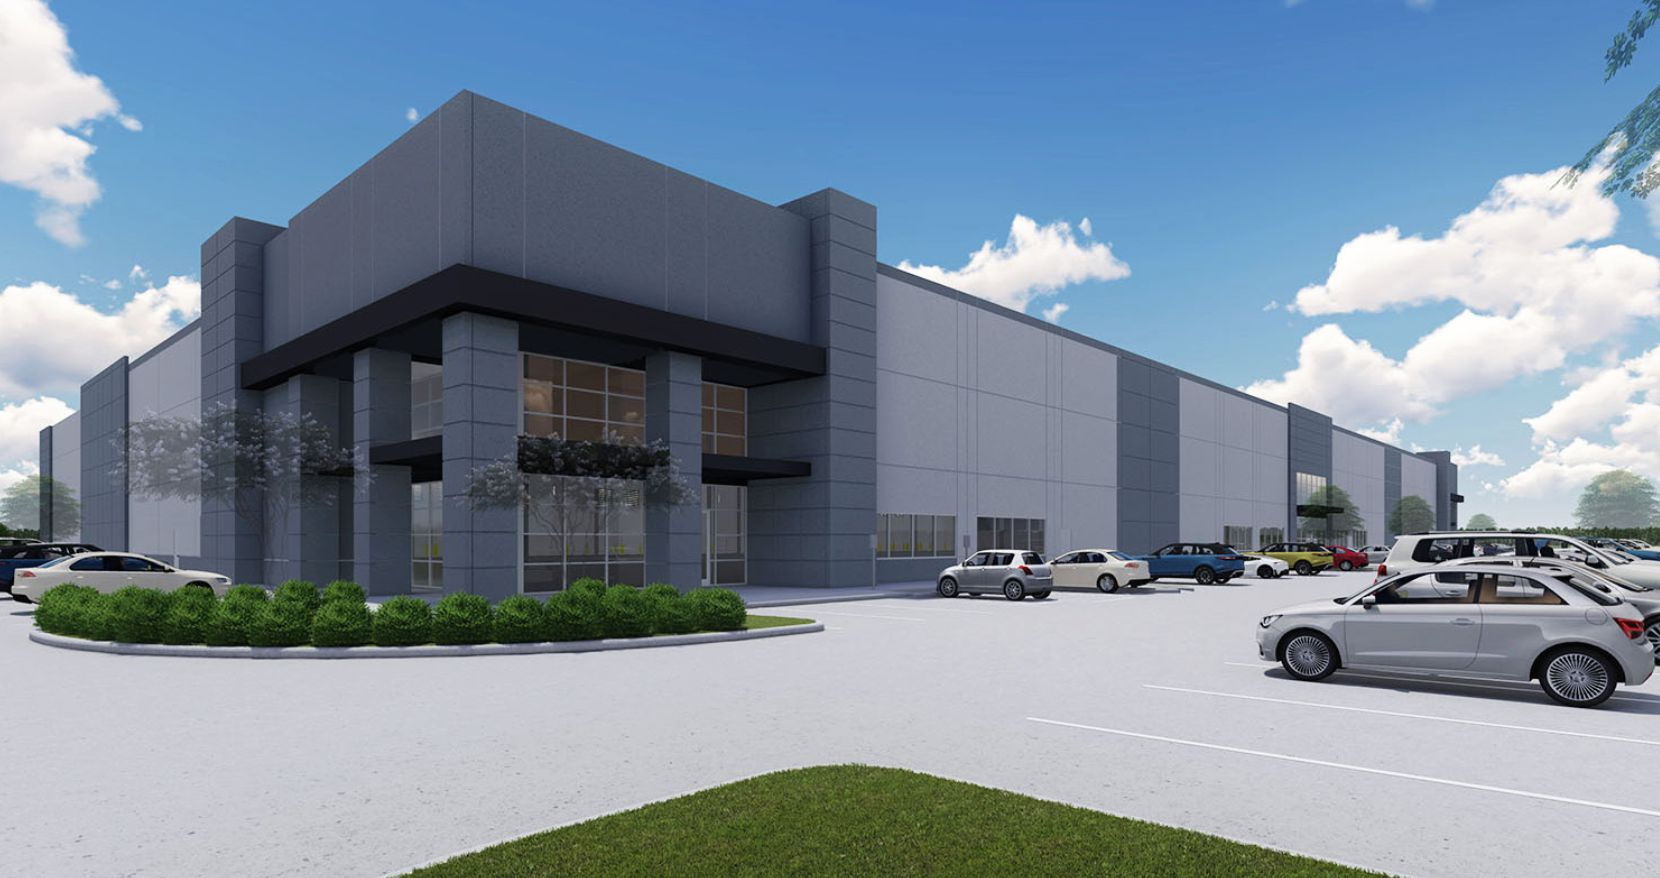 Elite Materials & Logistics Solutions has rented space in the new Denton Crossing @ I-35 industrial park.